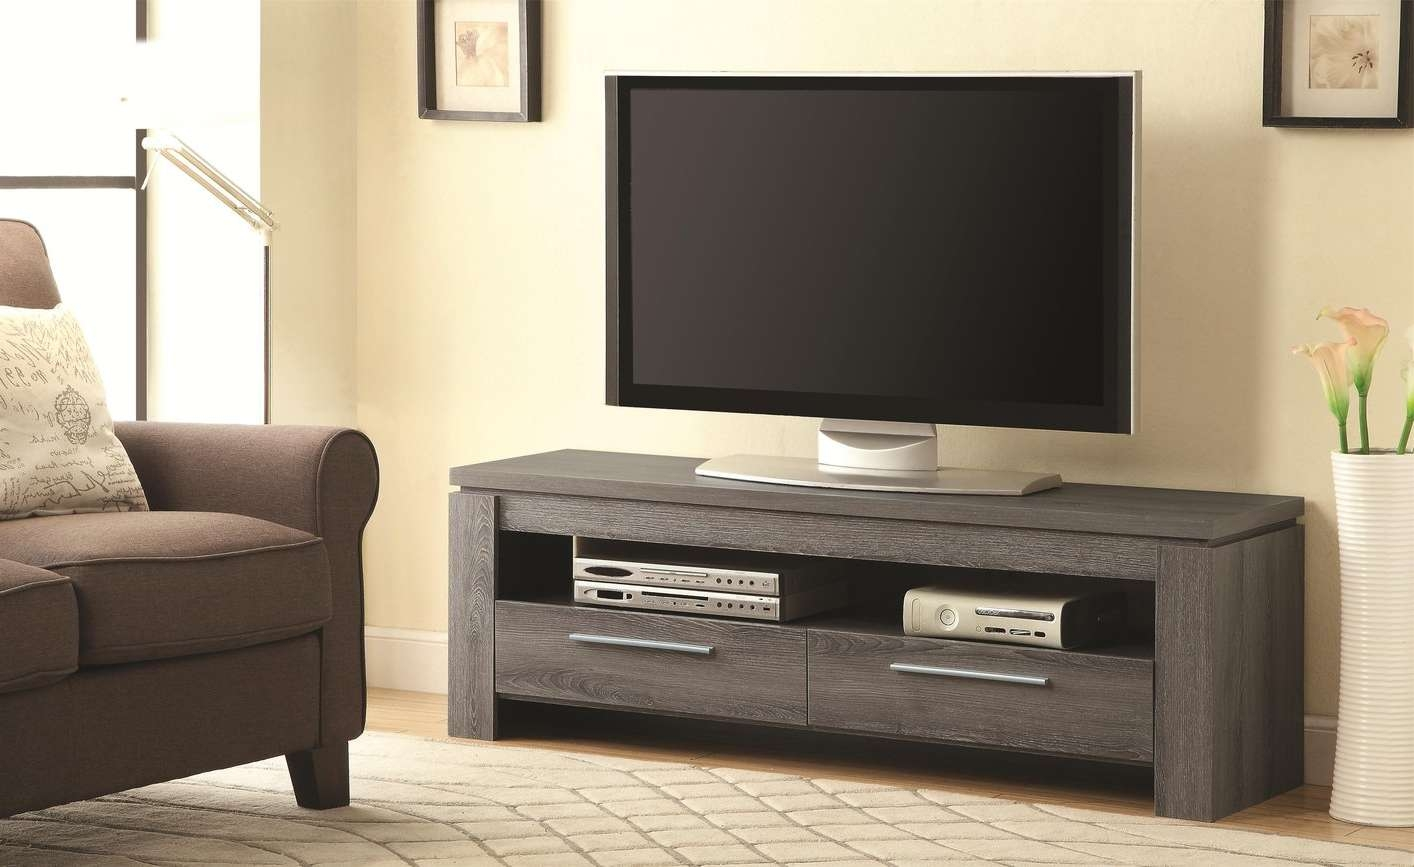 Grey Wood Tv Stand – Steal A Sofa Furniture Outlet Los Angeles Ca With Grey Wood Tv Stands (View 3 of 15)